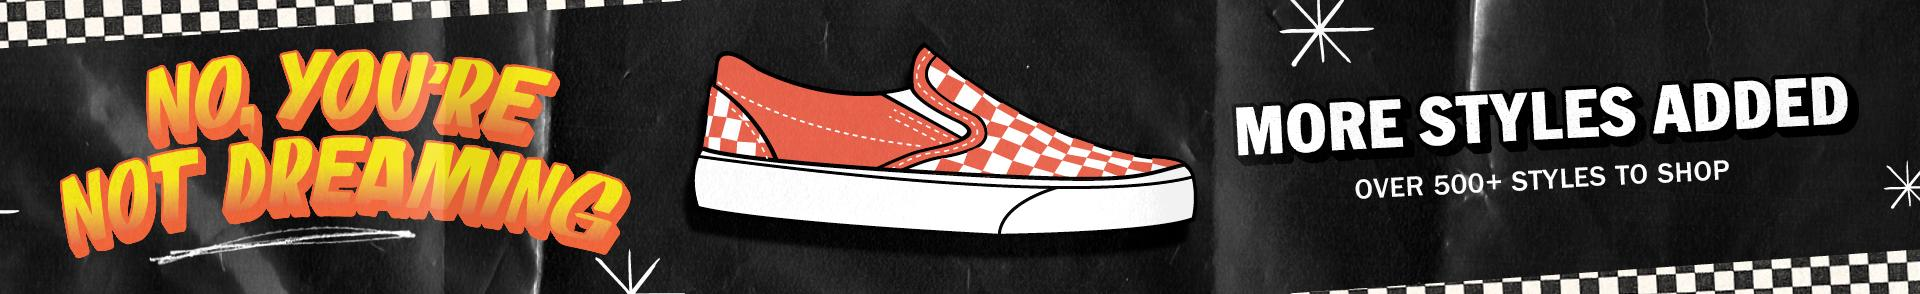 Over 500+ Styles On Sale | Exclusive Offers From Vans